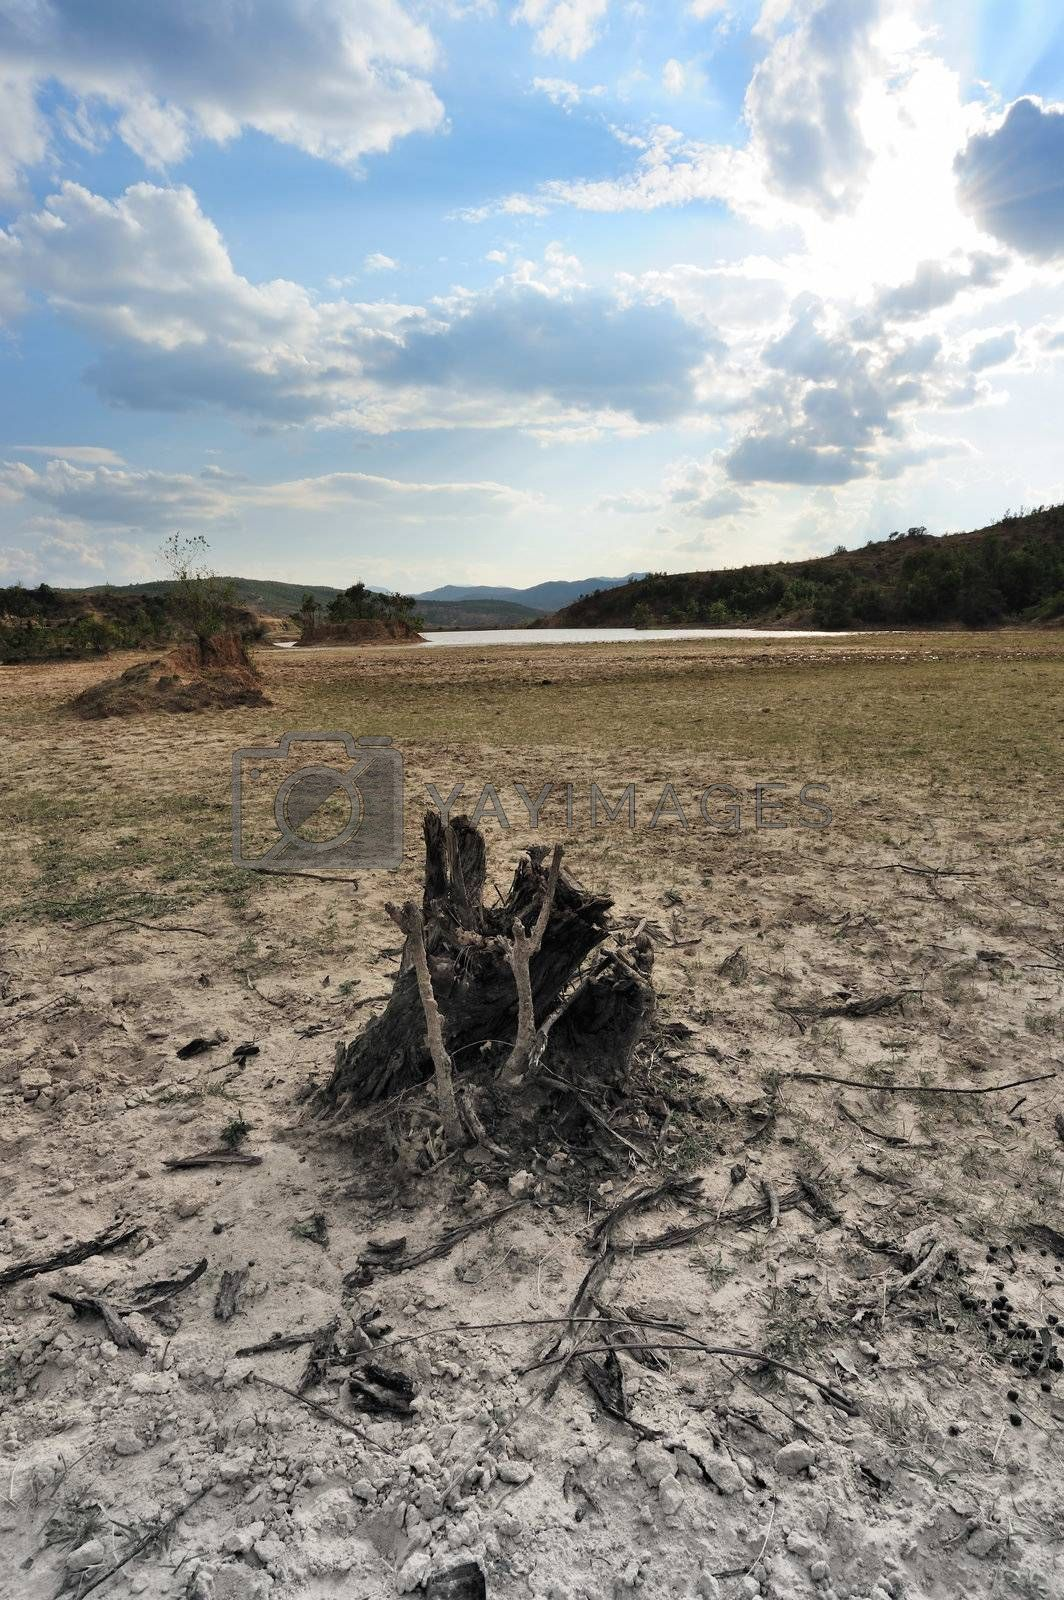 Tree root on the dried field in Yunnan province, China